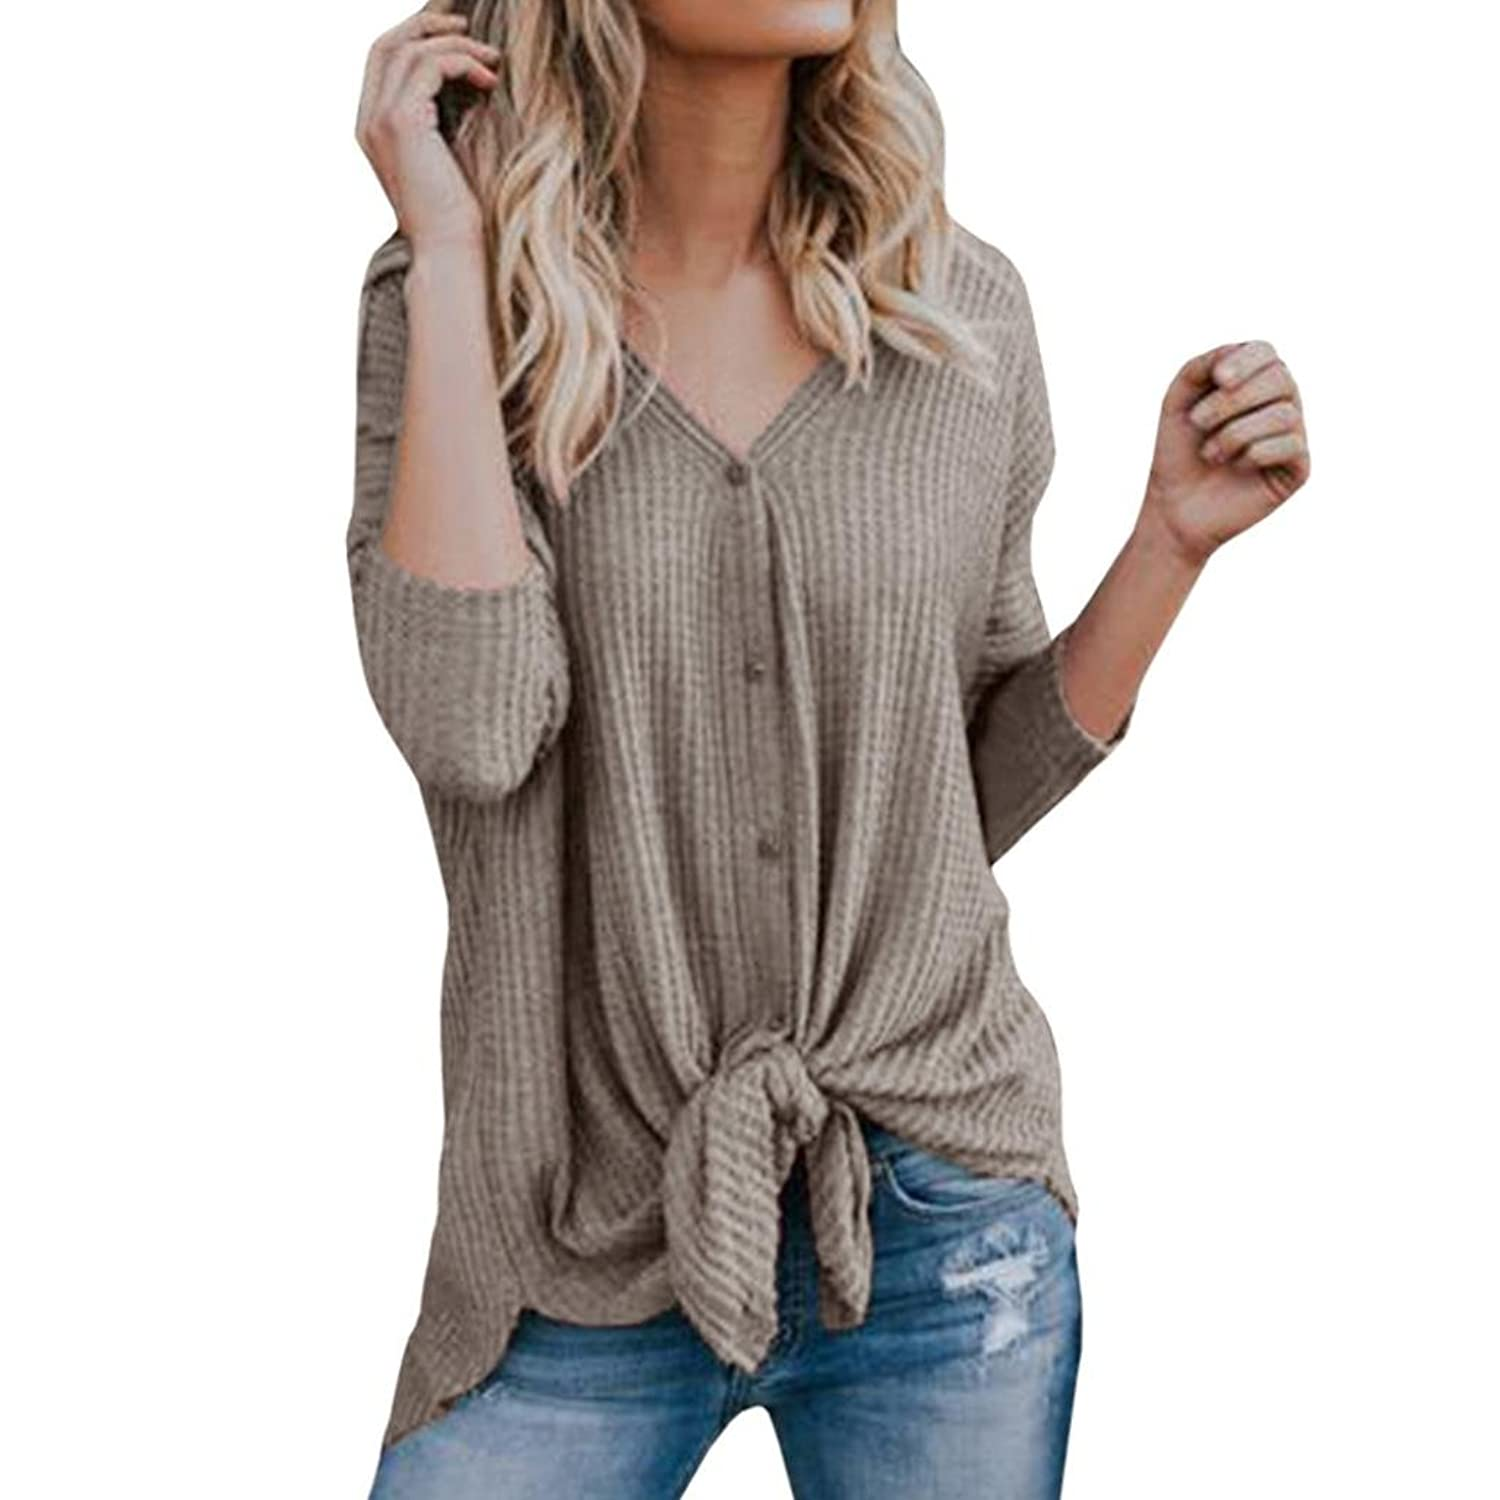 4614fe4c2c9010 ❊Material:Polyester♥♥Long sleeve round neck triple color block stripe t- shirt casual blouse women's casual oversized baggy off-shoulder shirts  batwing ...